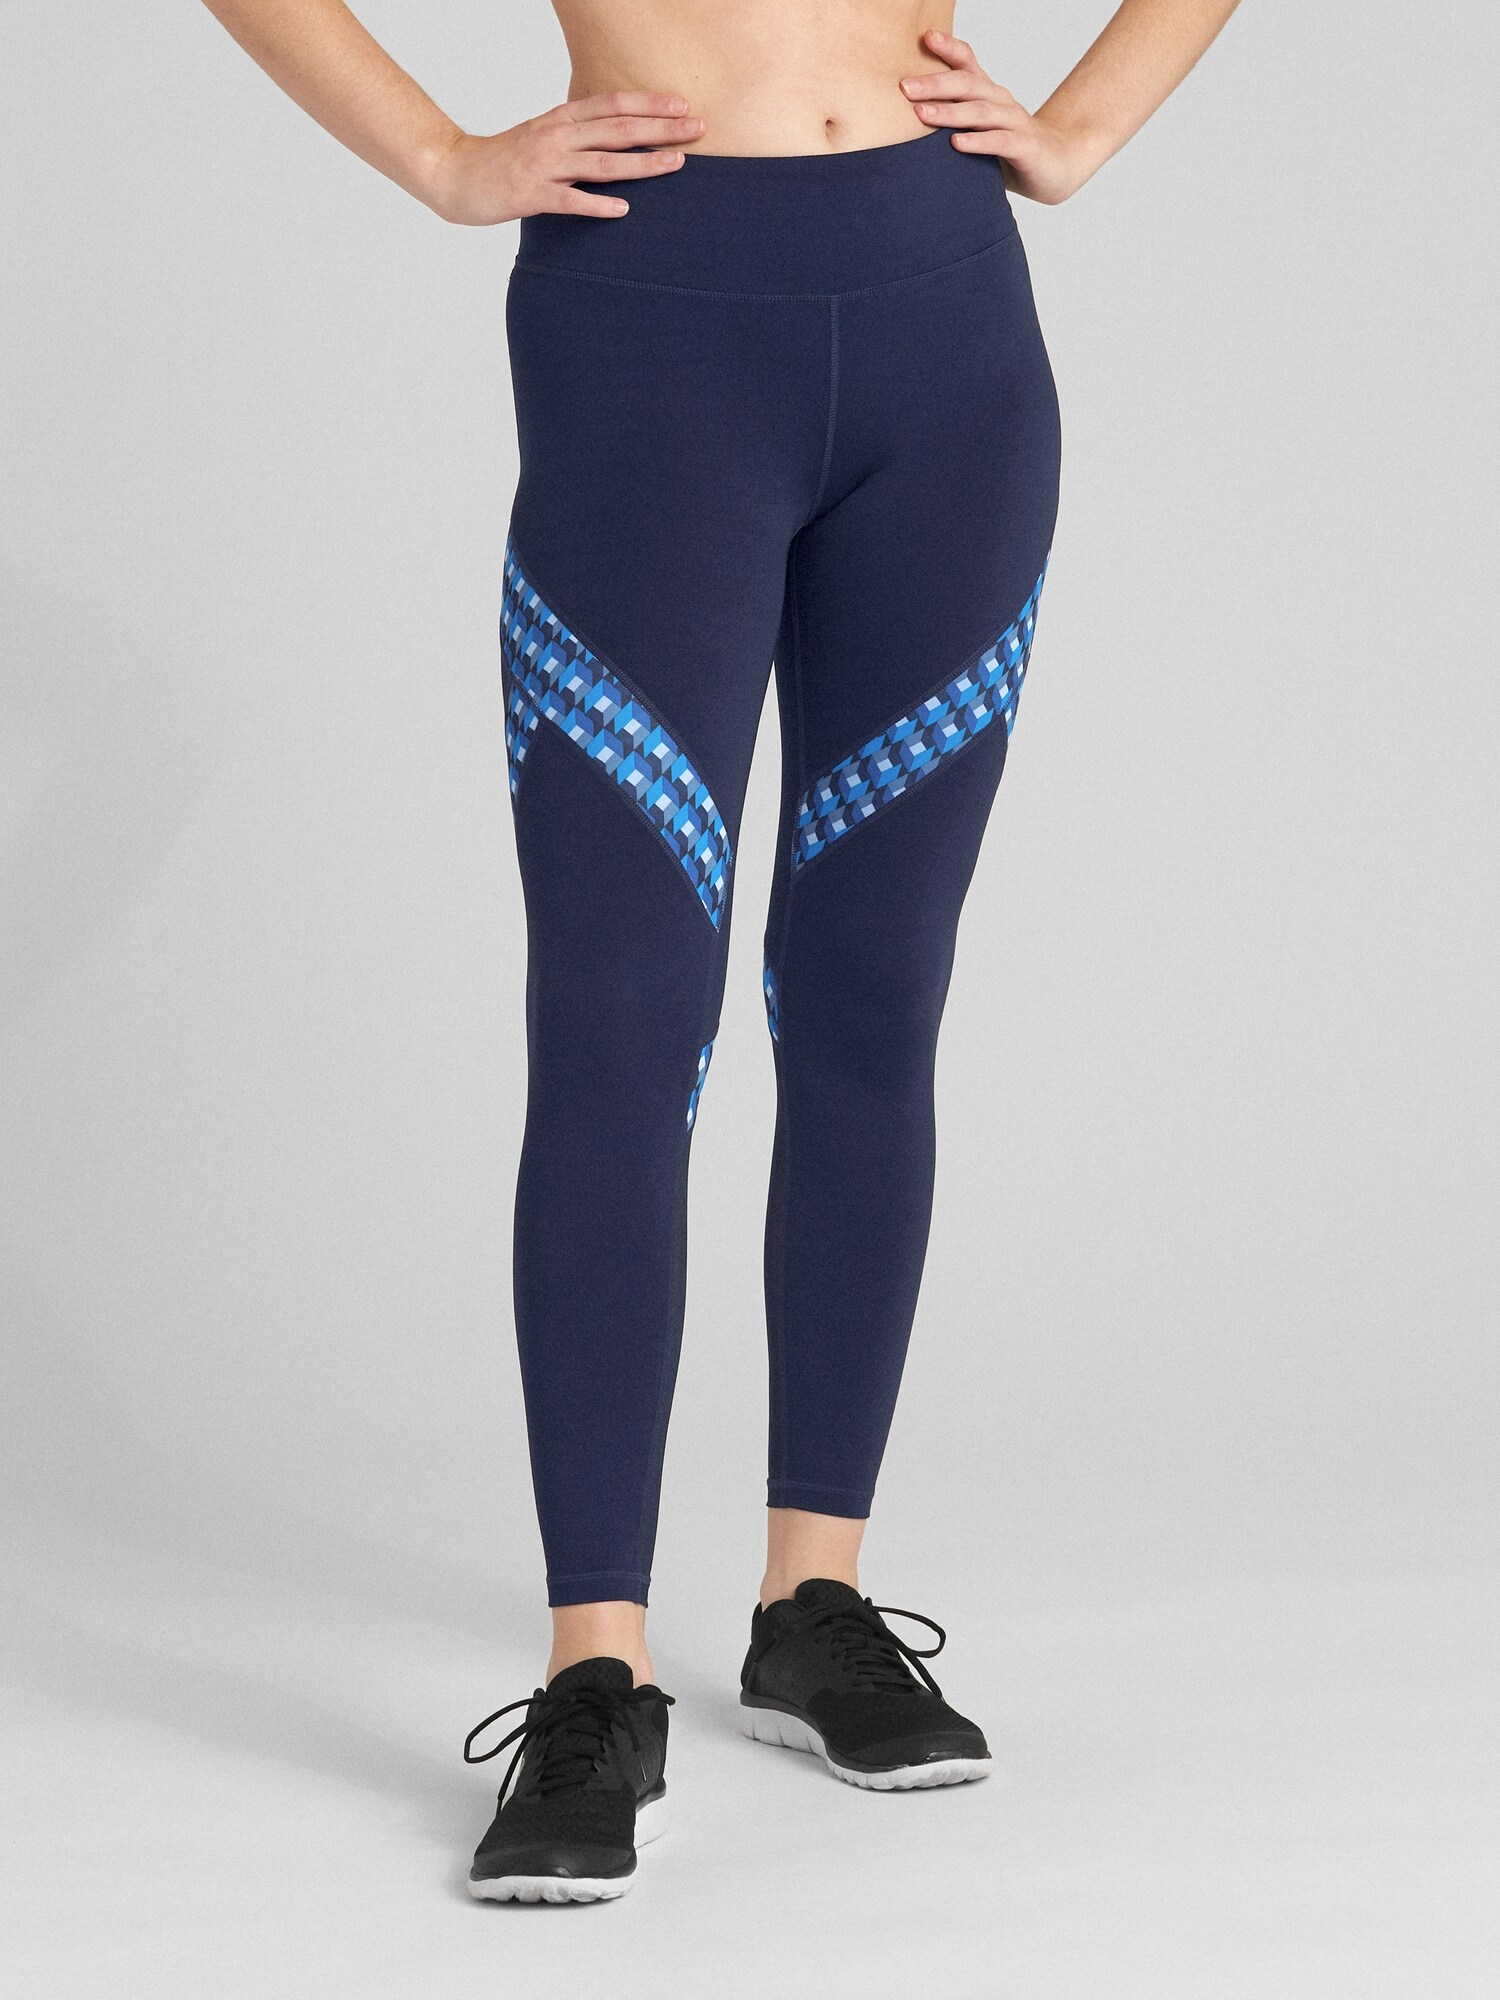 GFast Mid Rise Print Insert 7 8 Leggings in Eclipse